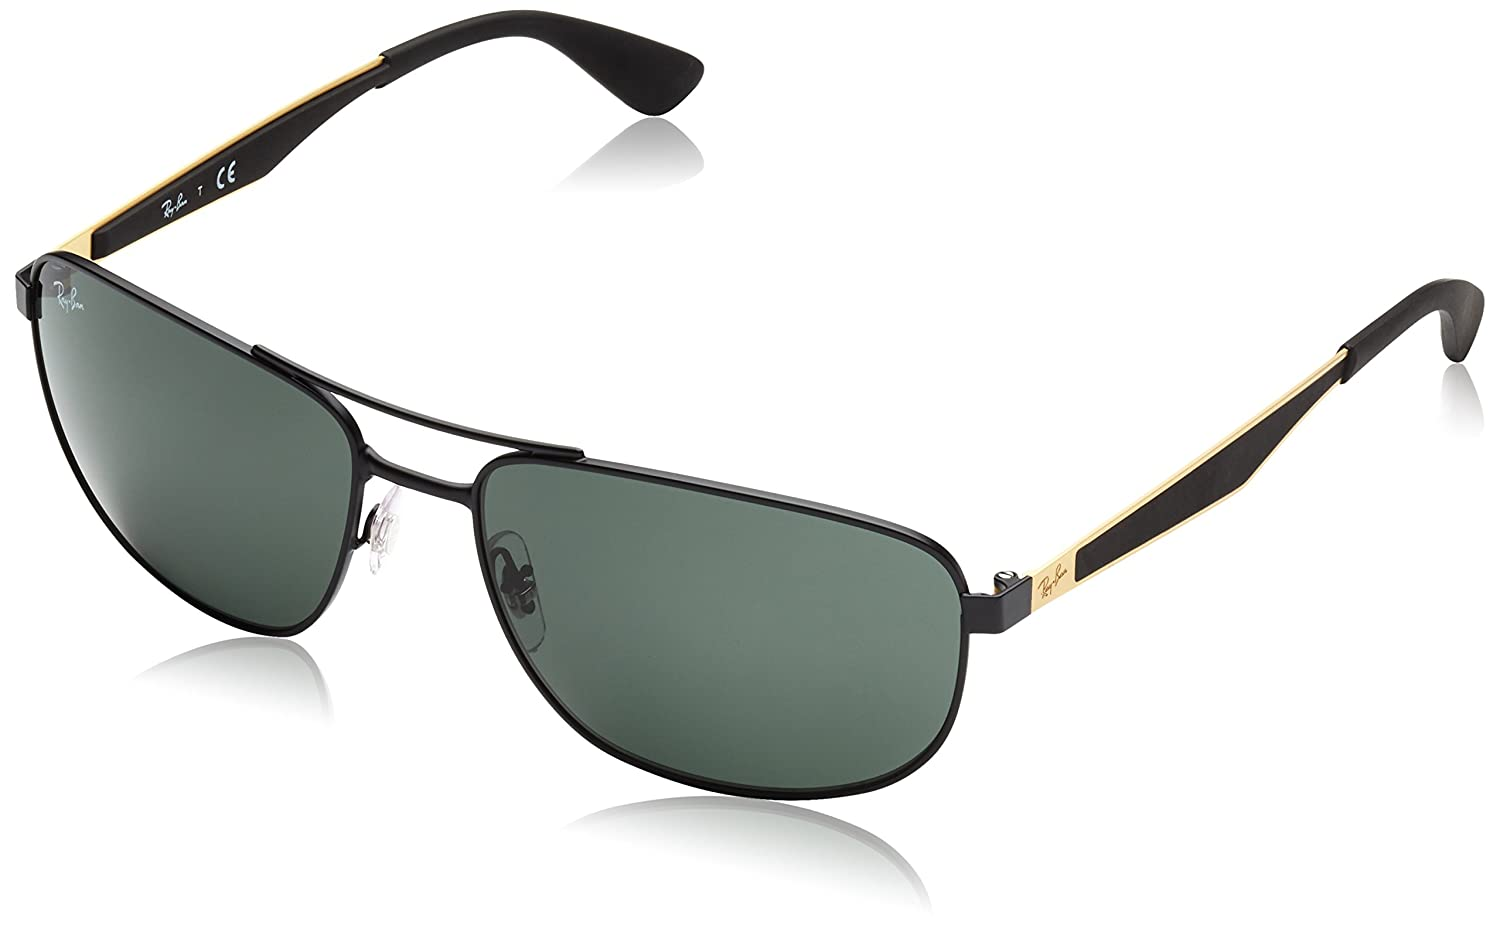 b202ec423ce73 Amazon.com  Ray-Ban METAL MAN SUNGLASS - MATTE BLACK Frame GREEN Lenses  58mm Non-Polarized  Clothing